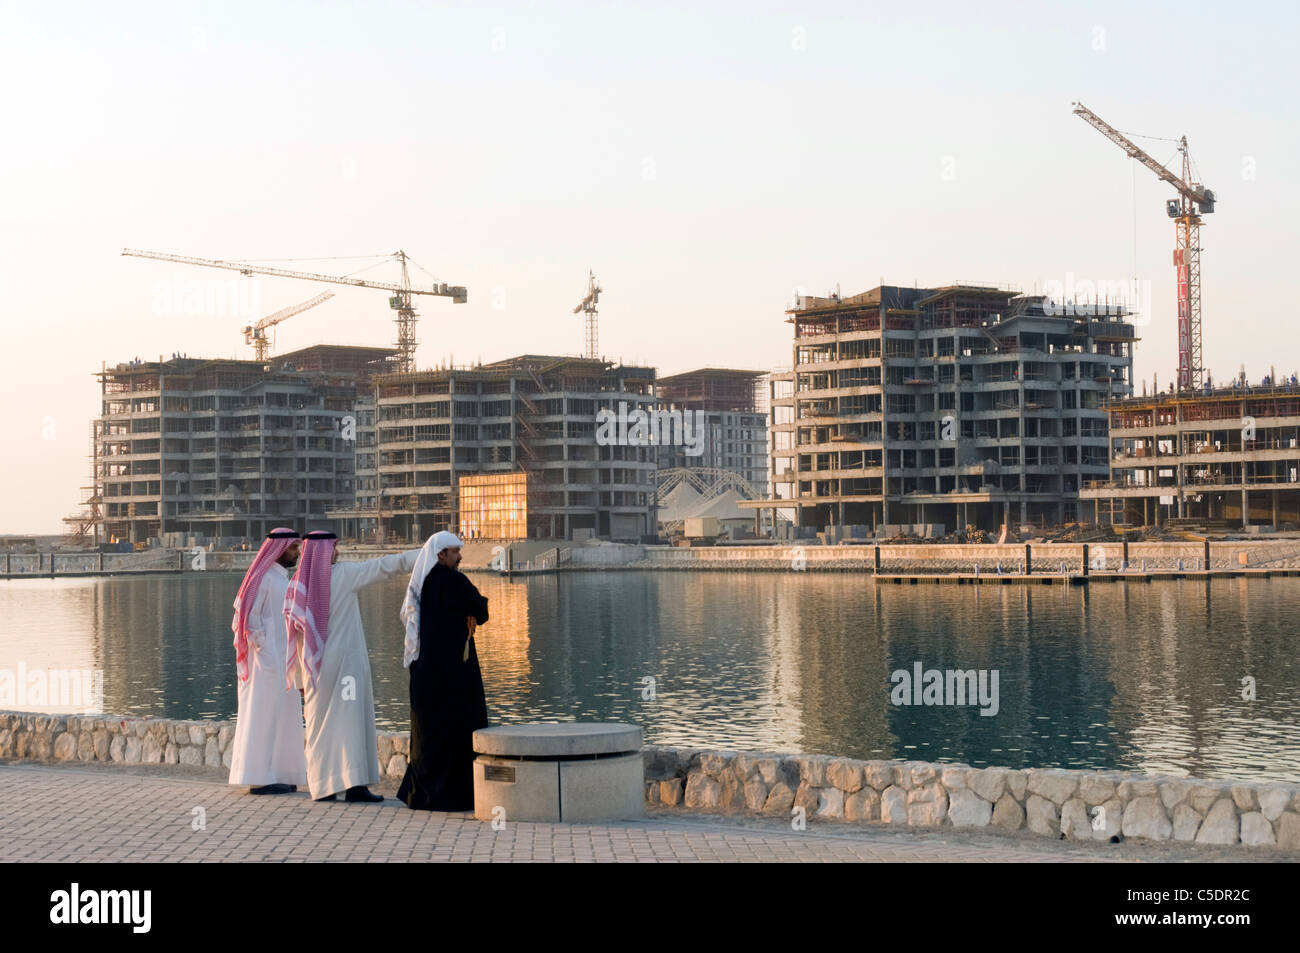 Elk204-1007 Bahrain, Manama, Arab men in traditional dress looking at high rise construction from across harbor - Stock Image